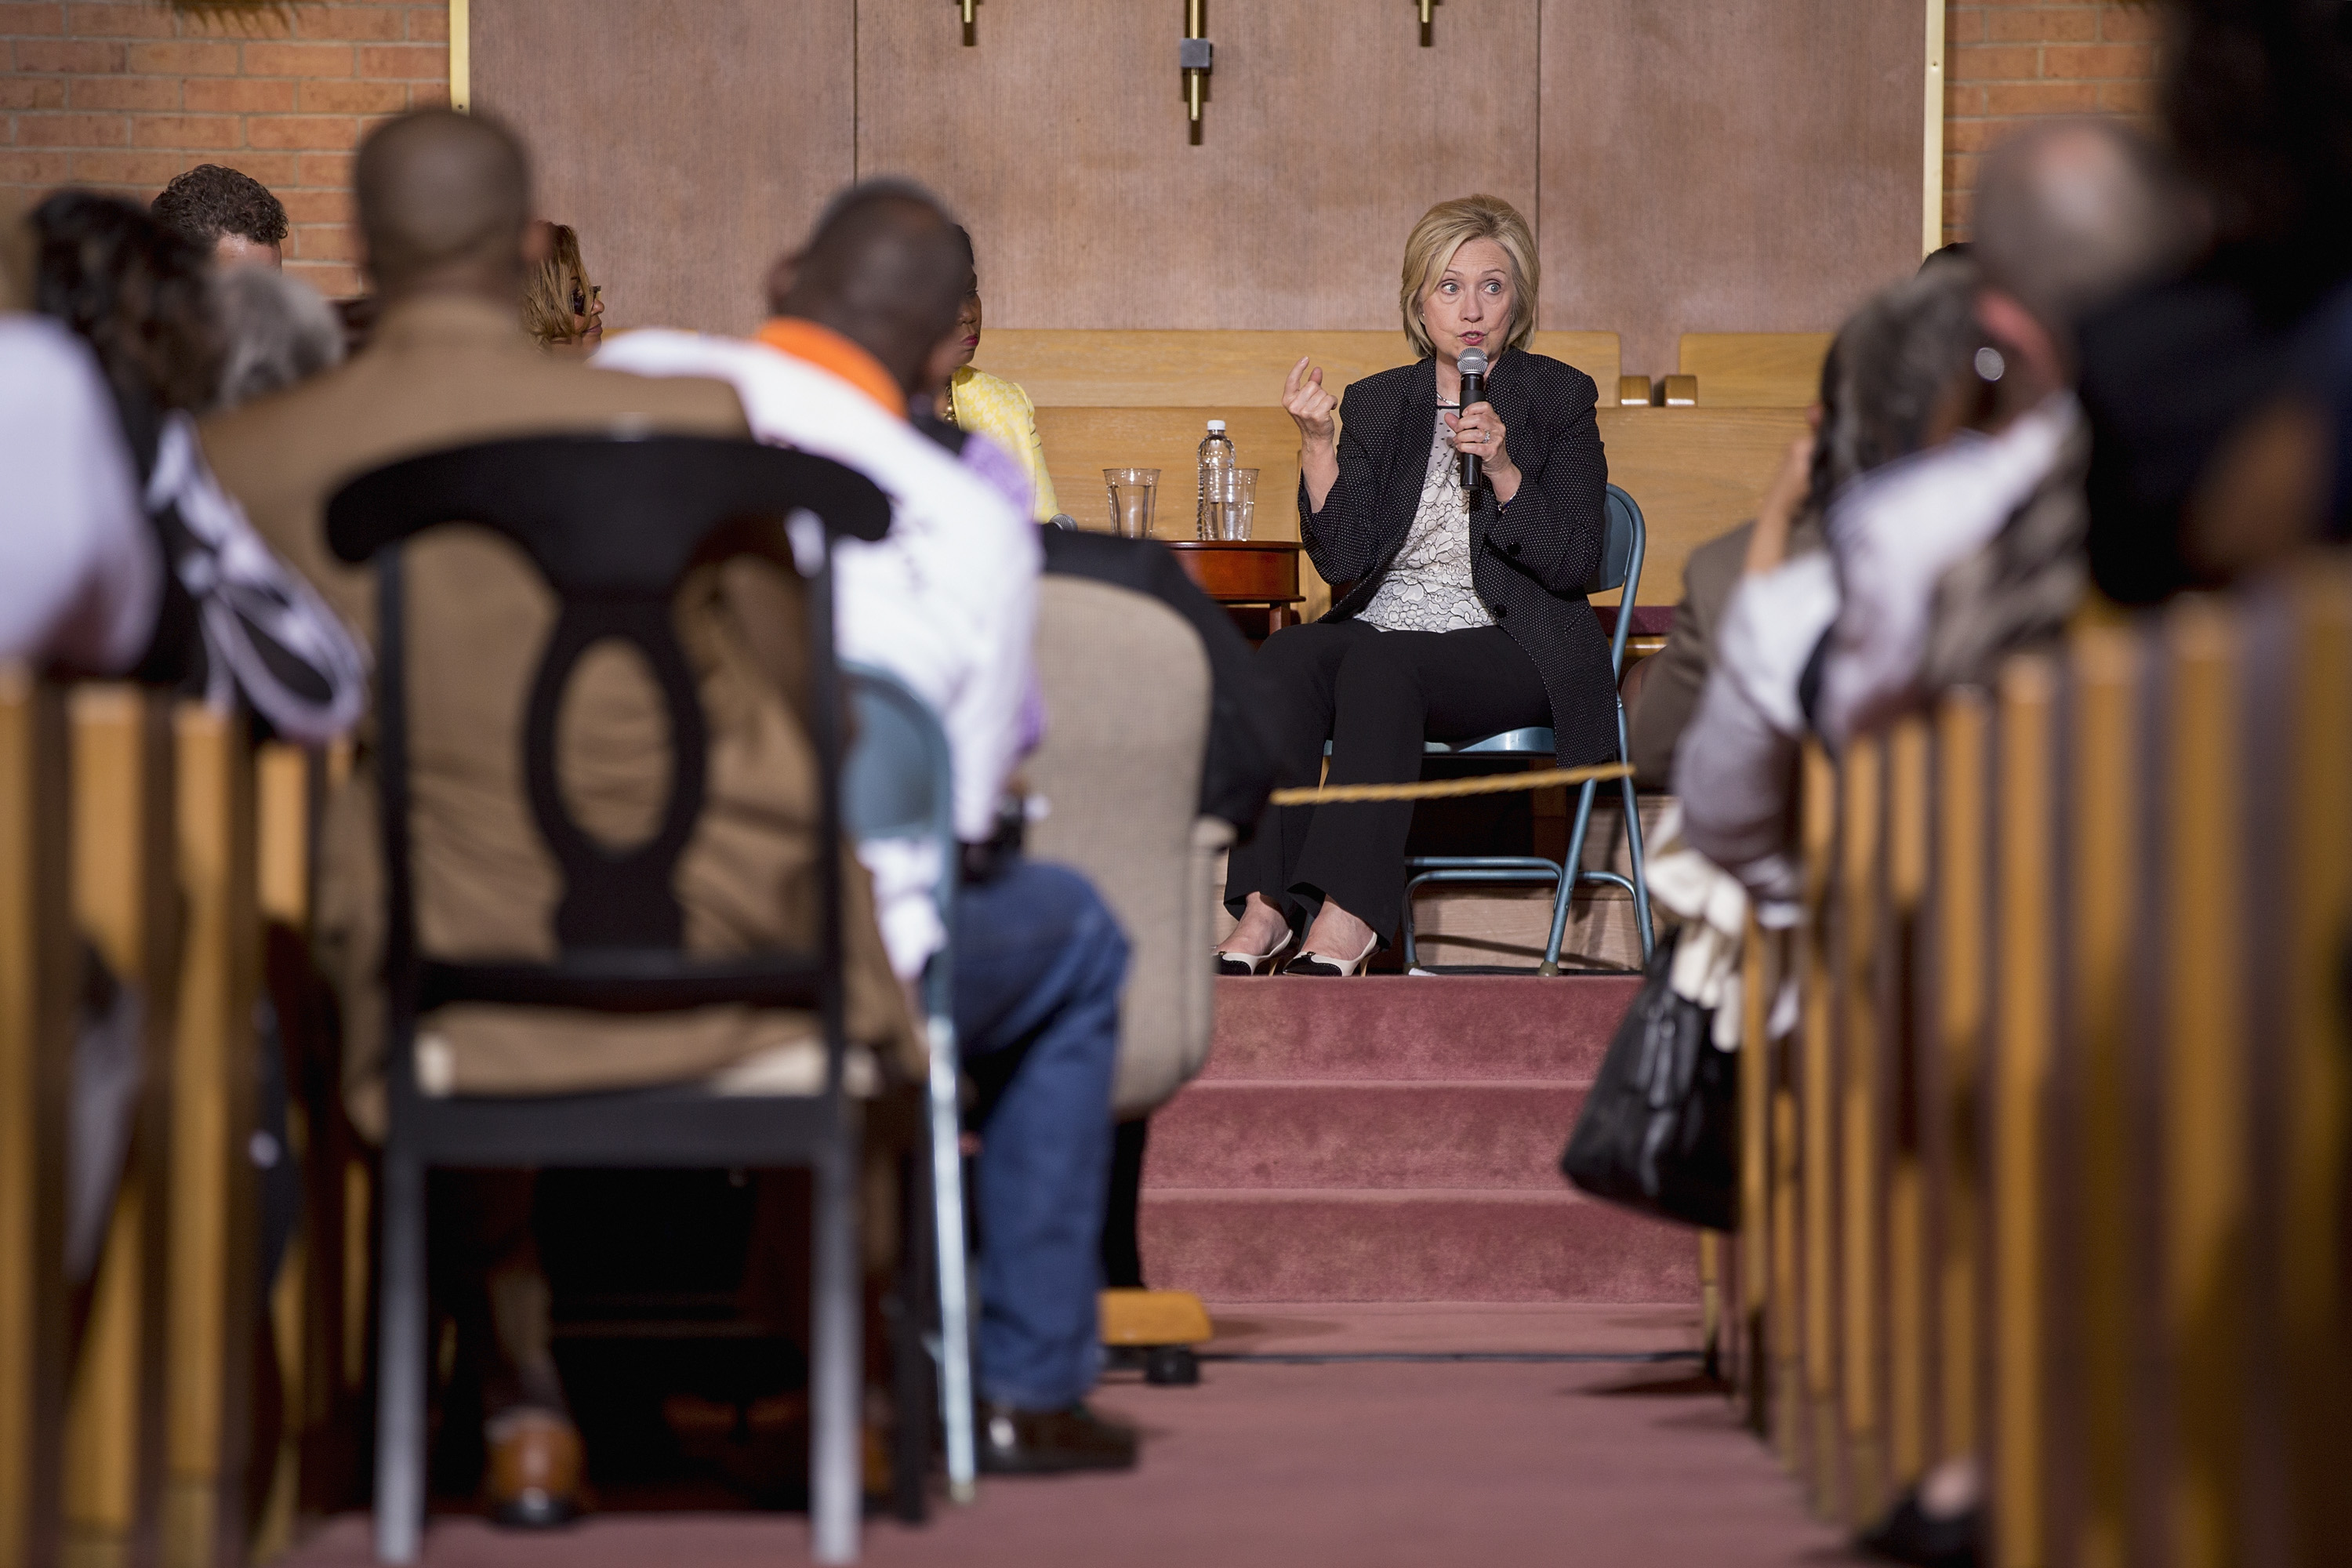 Democratic presidential candidate and former U.S. Secretary of State Hillary Clinton speaks to supporters on June 23, 2015 at Christ the King United Church of Christ in Florissant, Missouri.